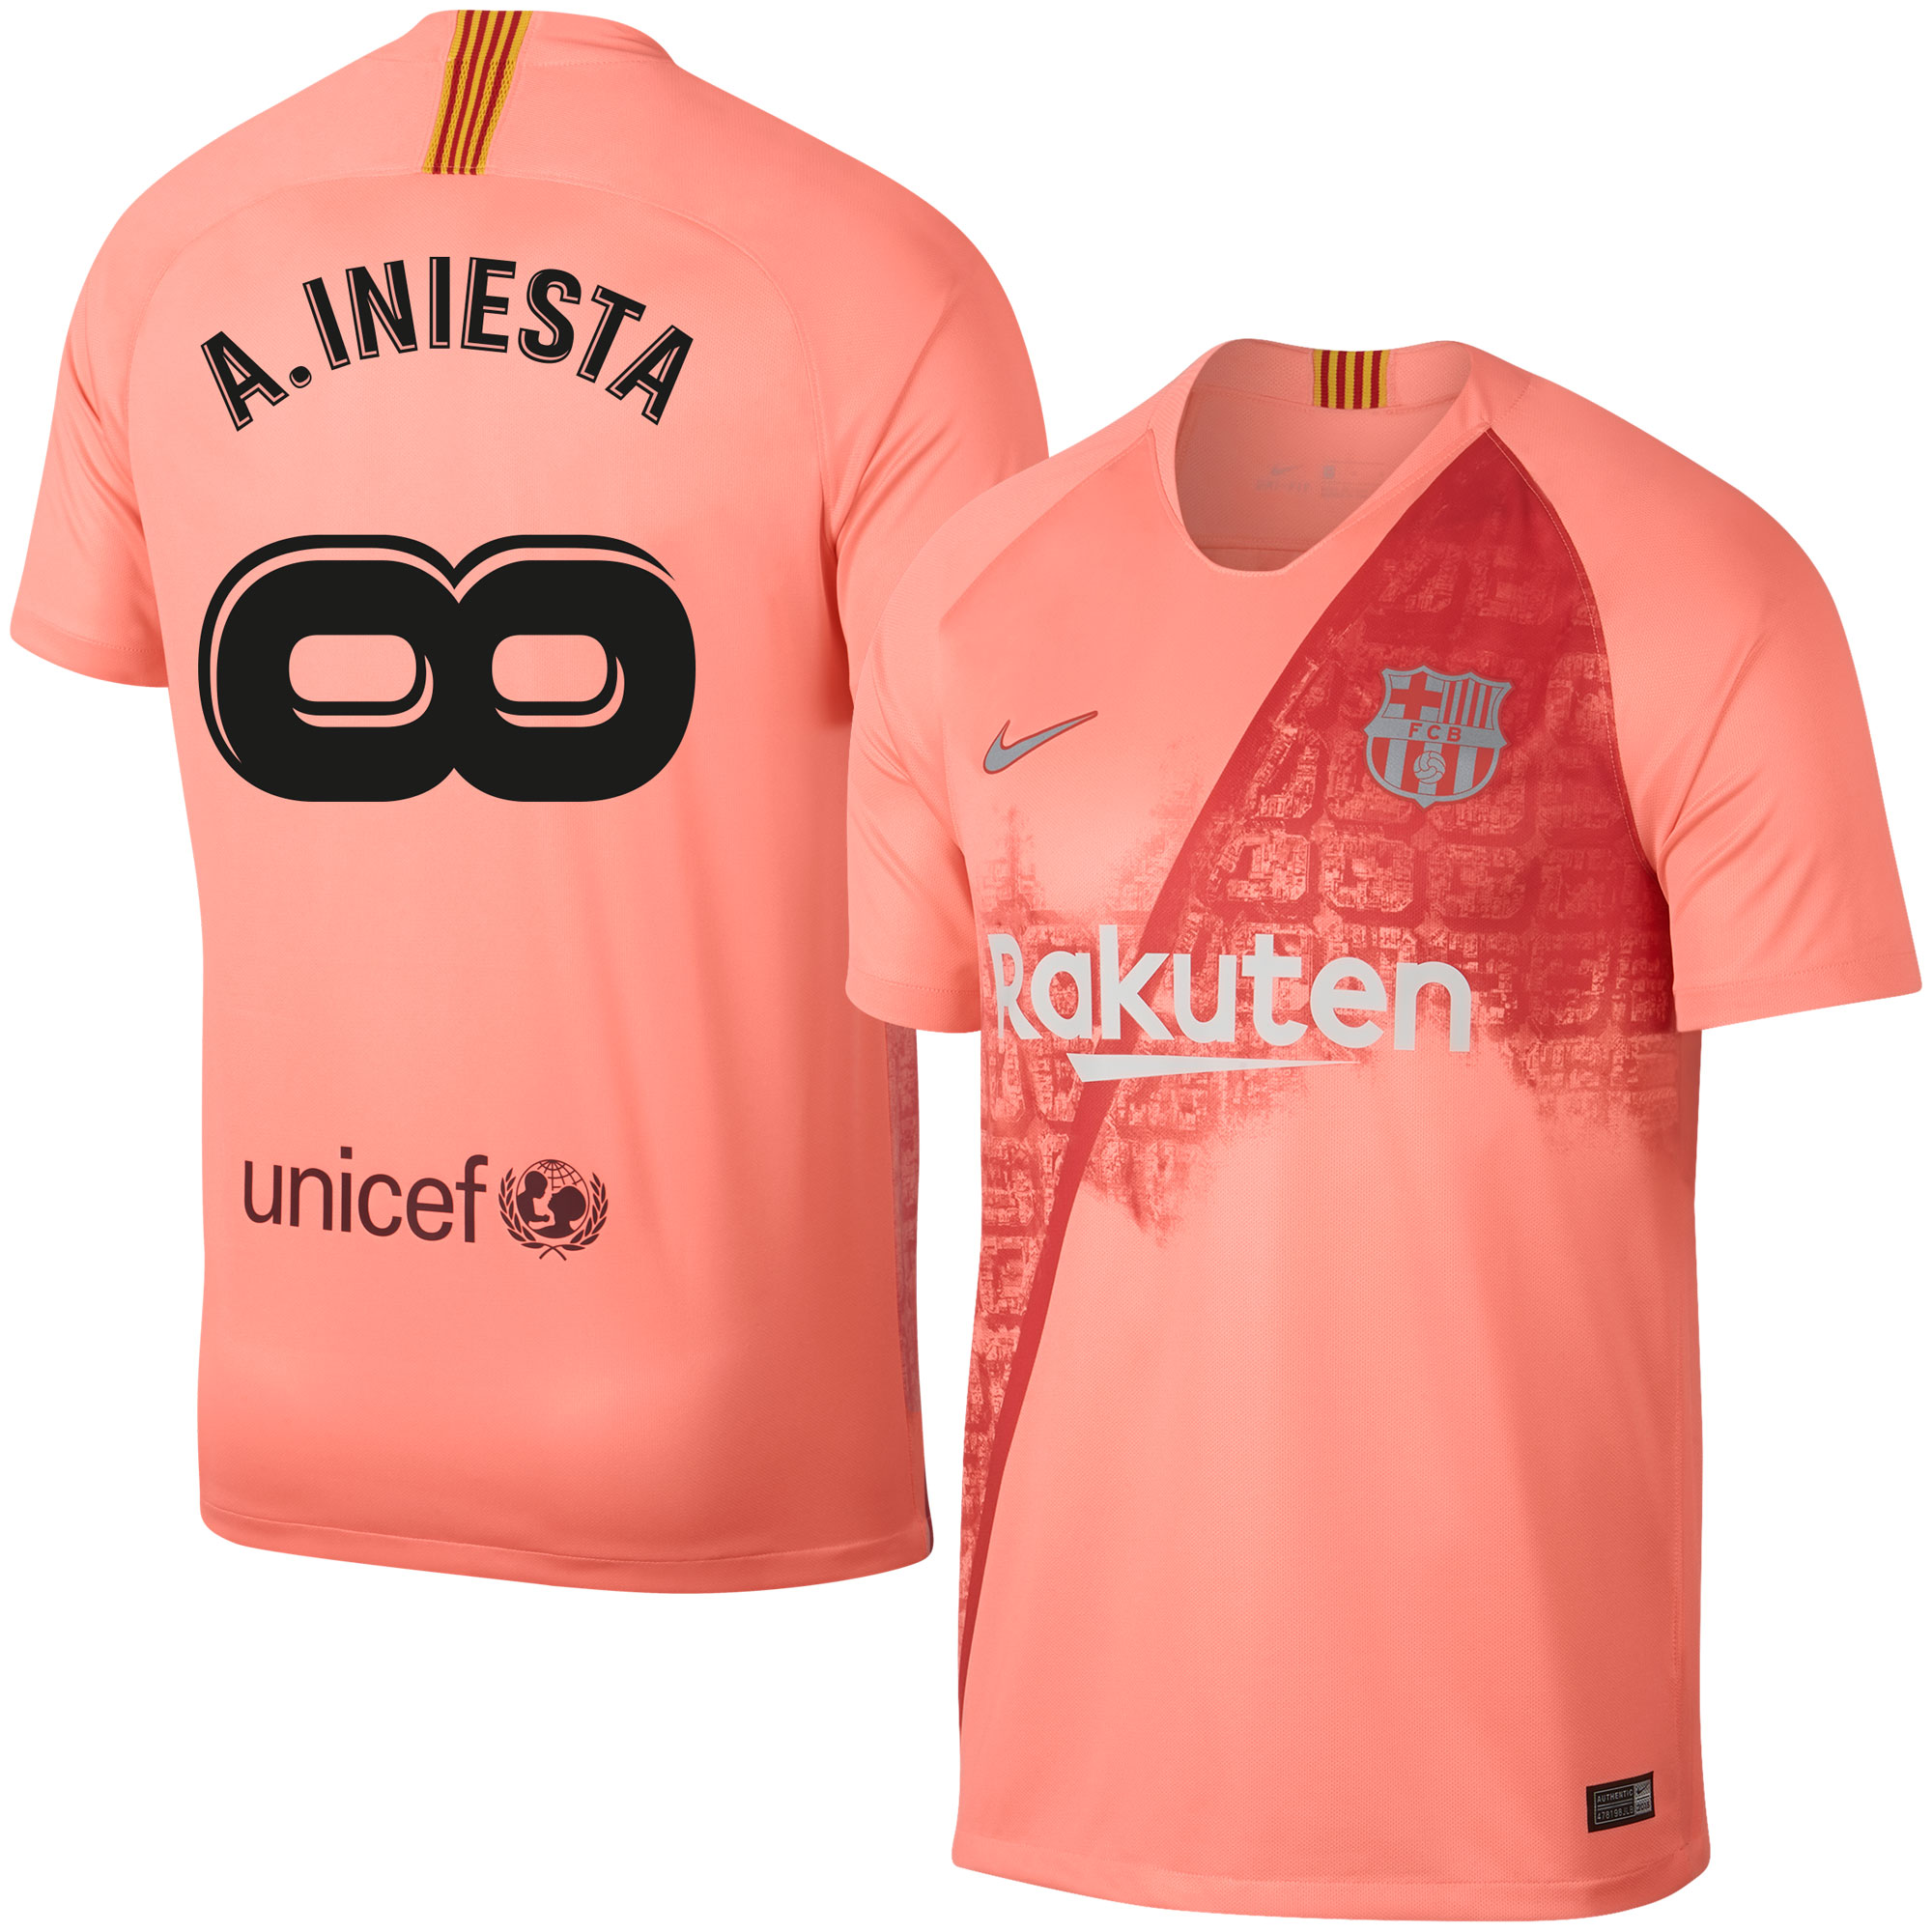 Barcelona 3rd A. Ineista Infinity Shirt 2018 2019 (Fan Style Prining)